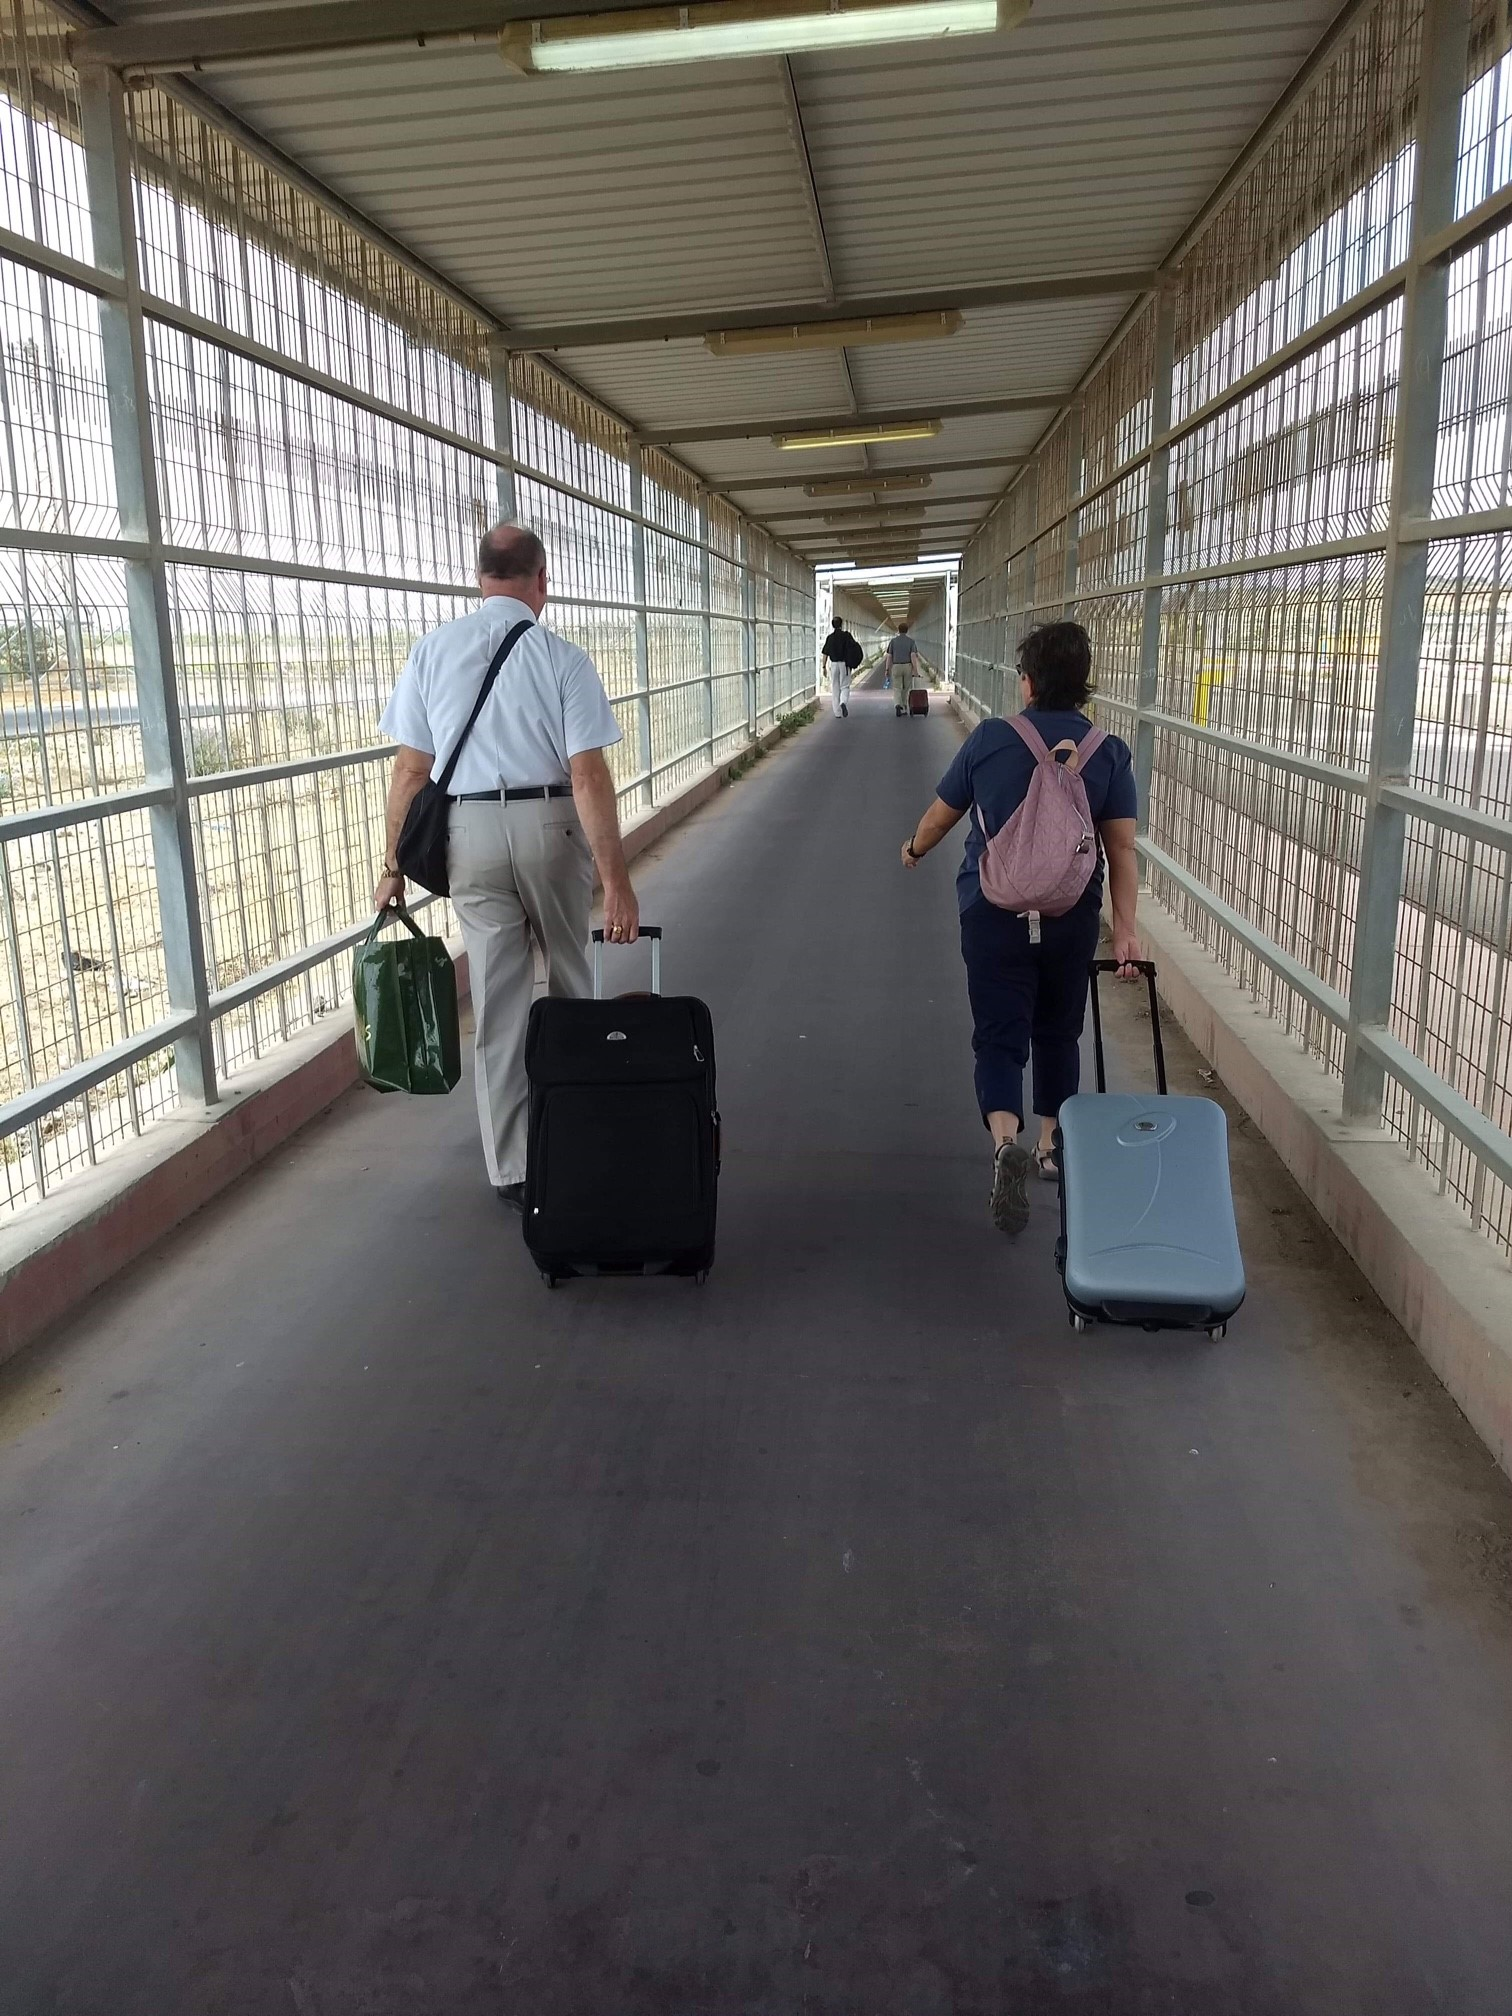 Making our way through the caged corridor walkway into Gaza.